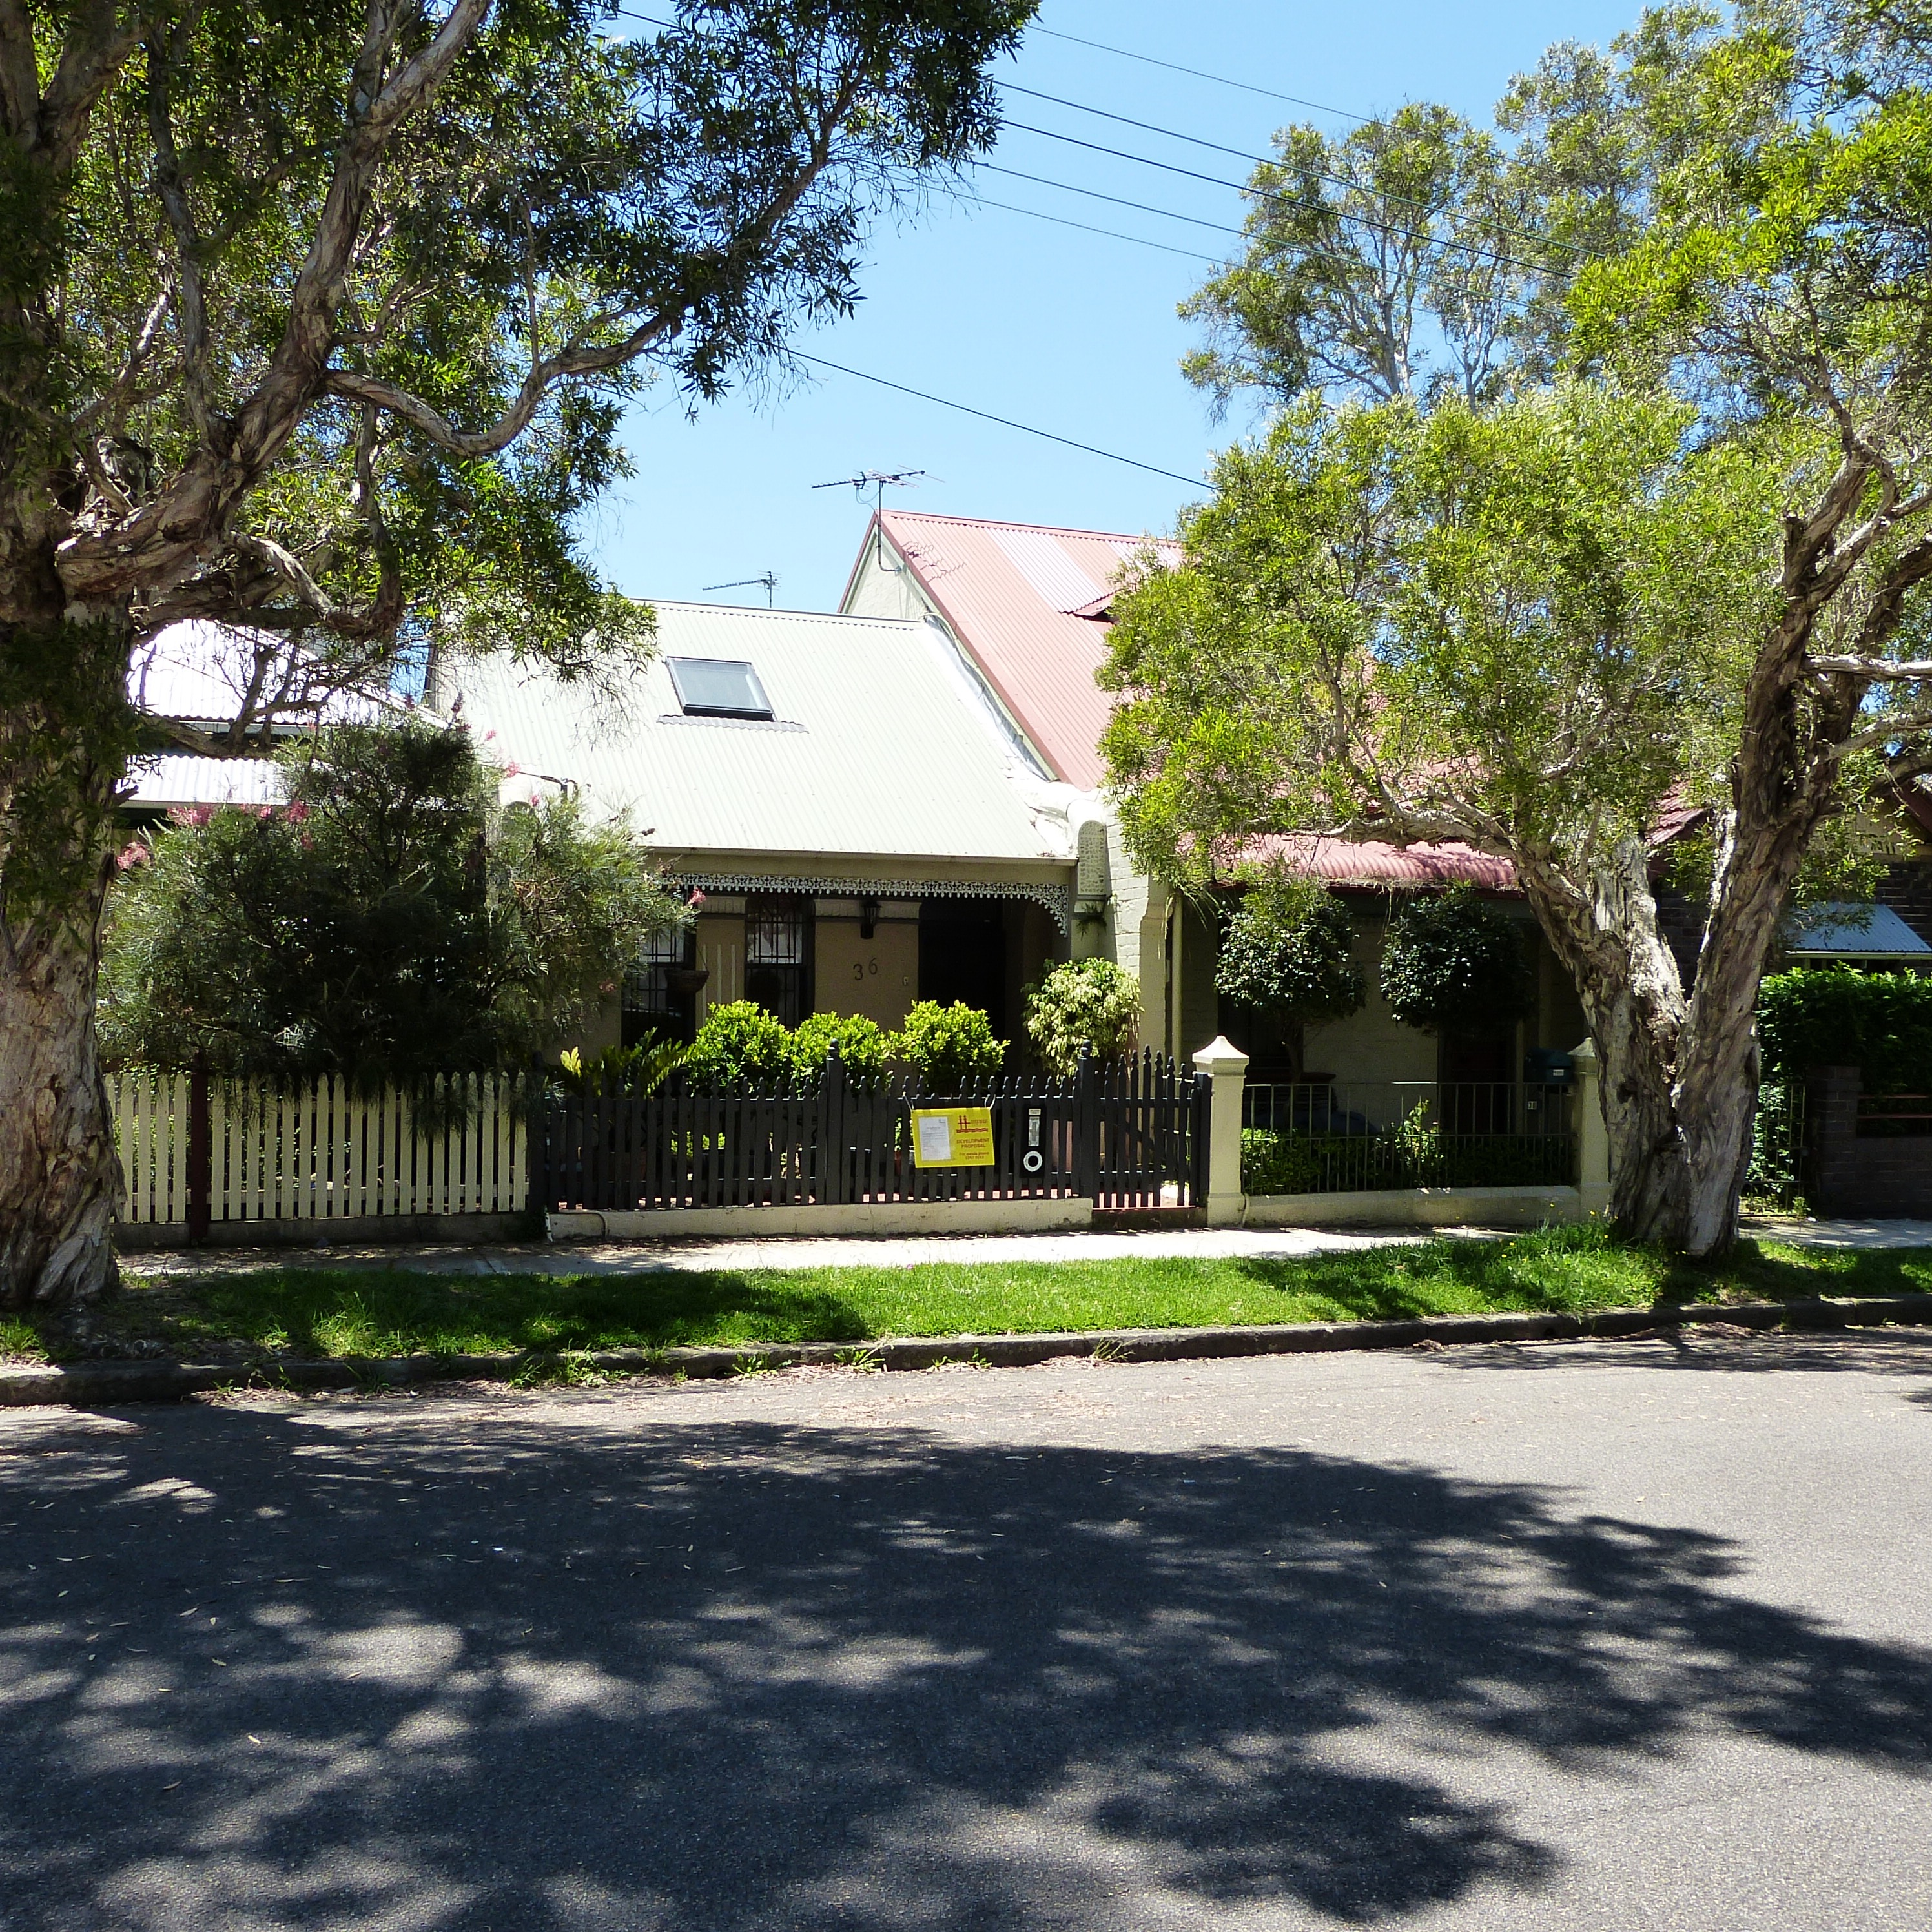 Only the front facade of 36 Lamb Street Lilydale remains of the original residence constructed in the early 1890s.